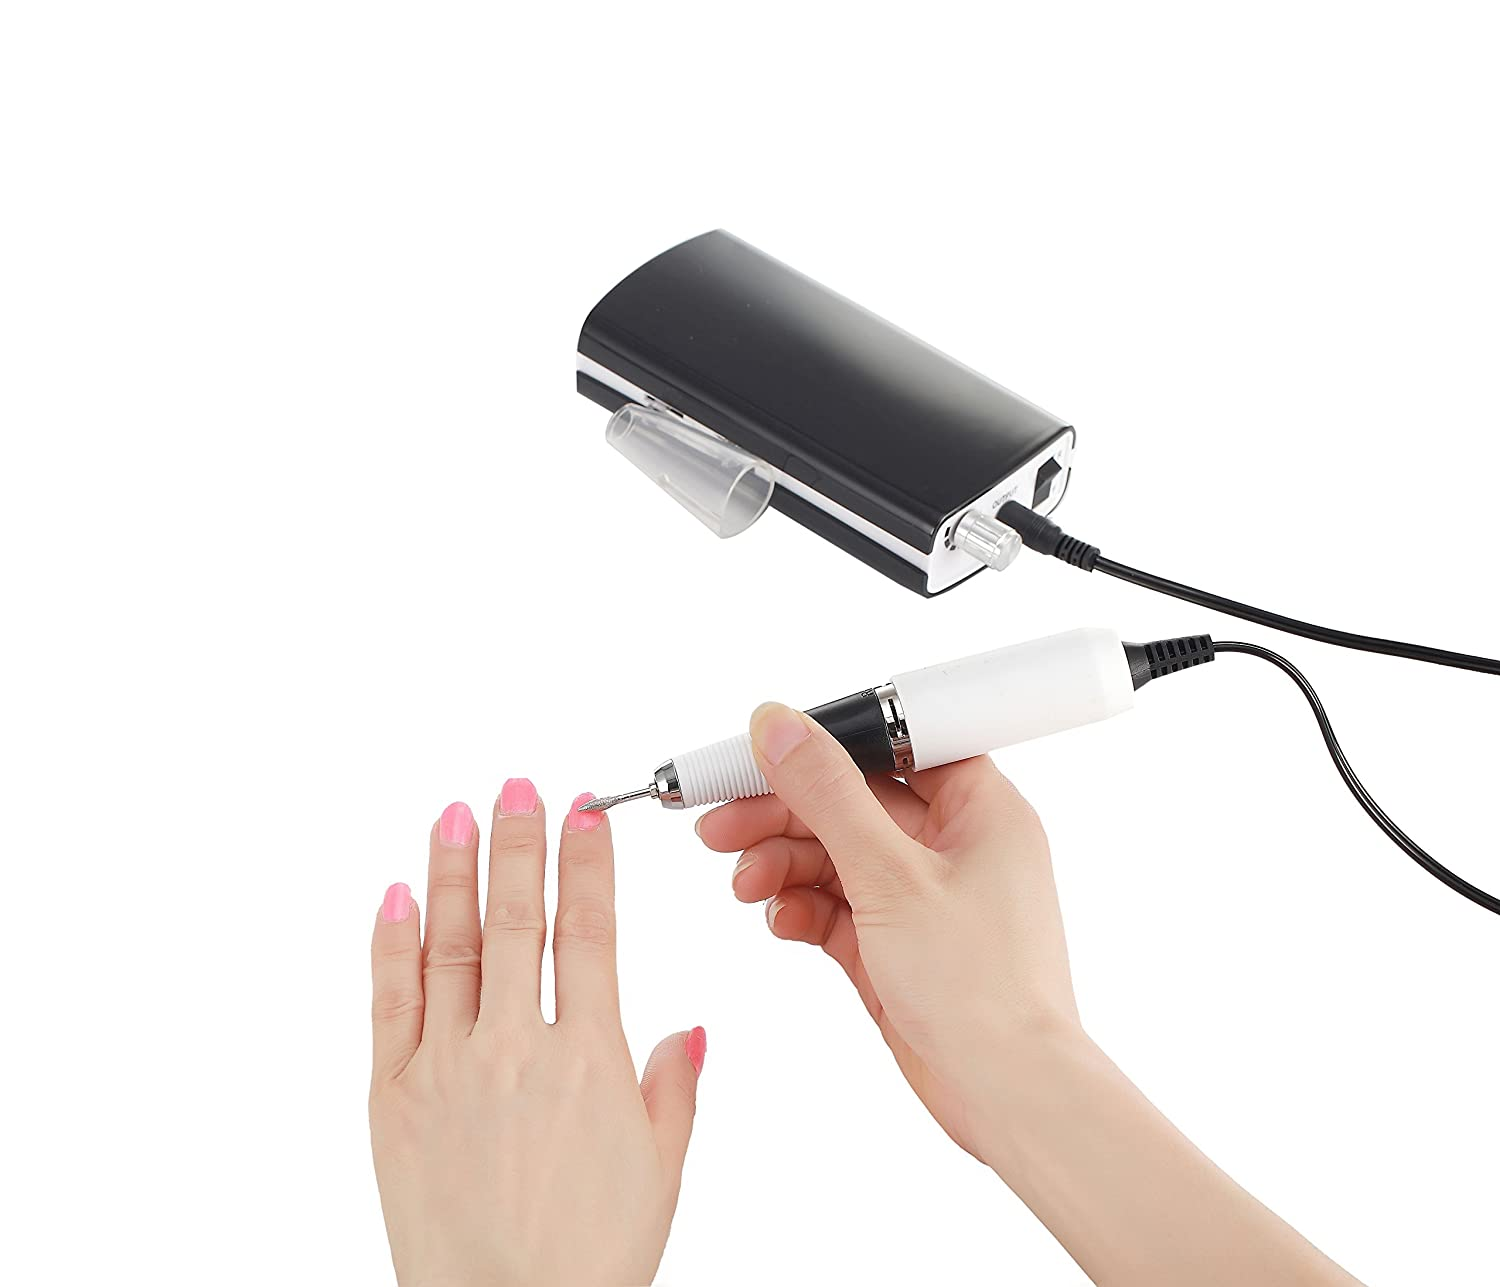 Amazon.com: Miss Sweet Portable Nail Drill Machine Rechargeable Electric Nail File for Acrylic Nail RPM30000 (Black): Beauty